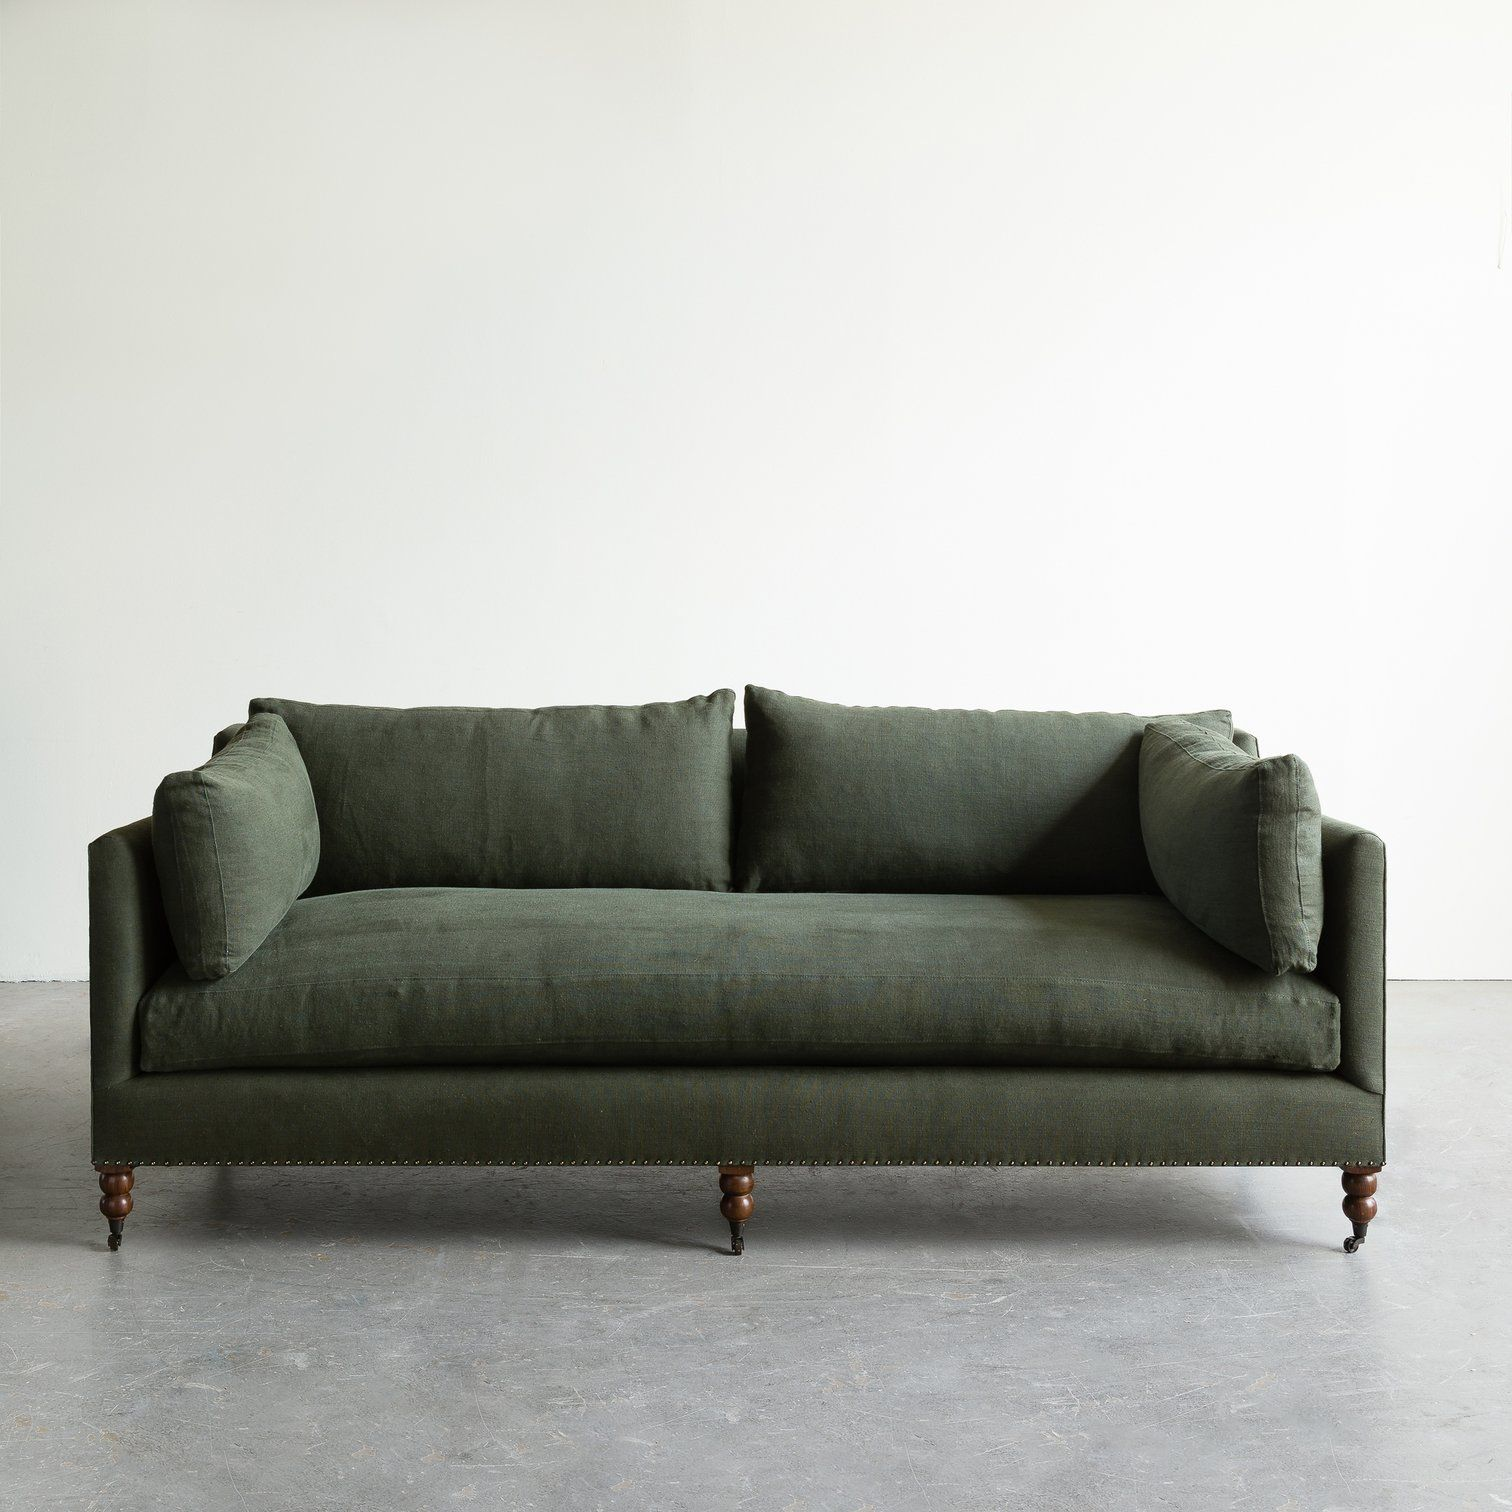 The Best Places To Sofas Online